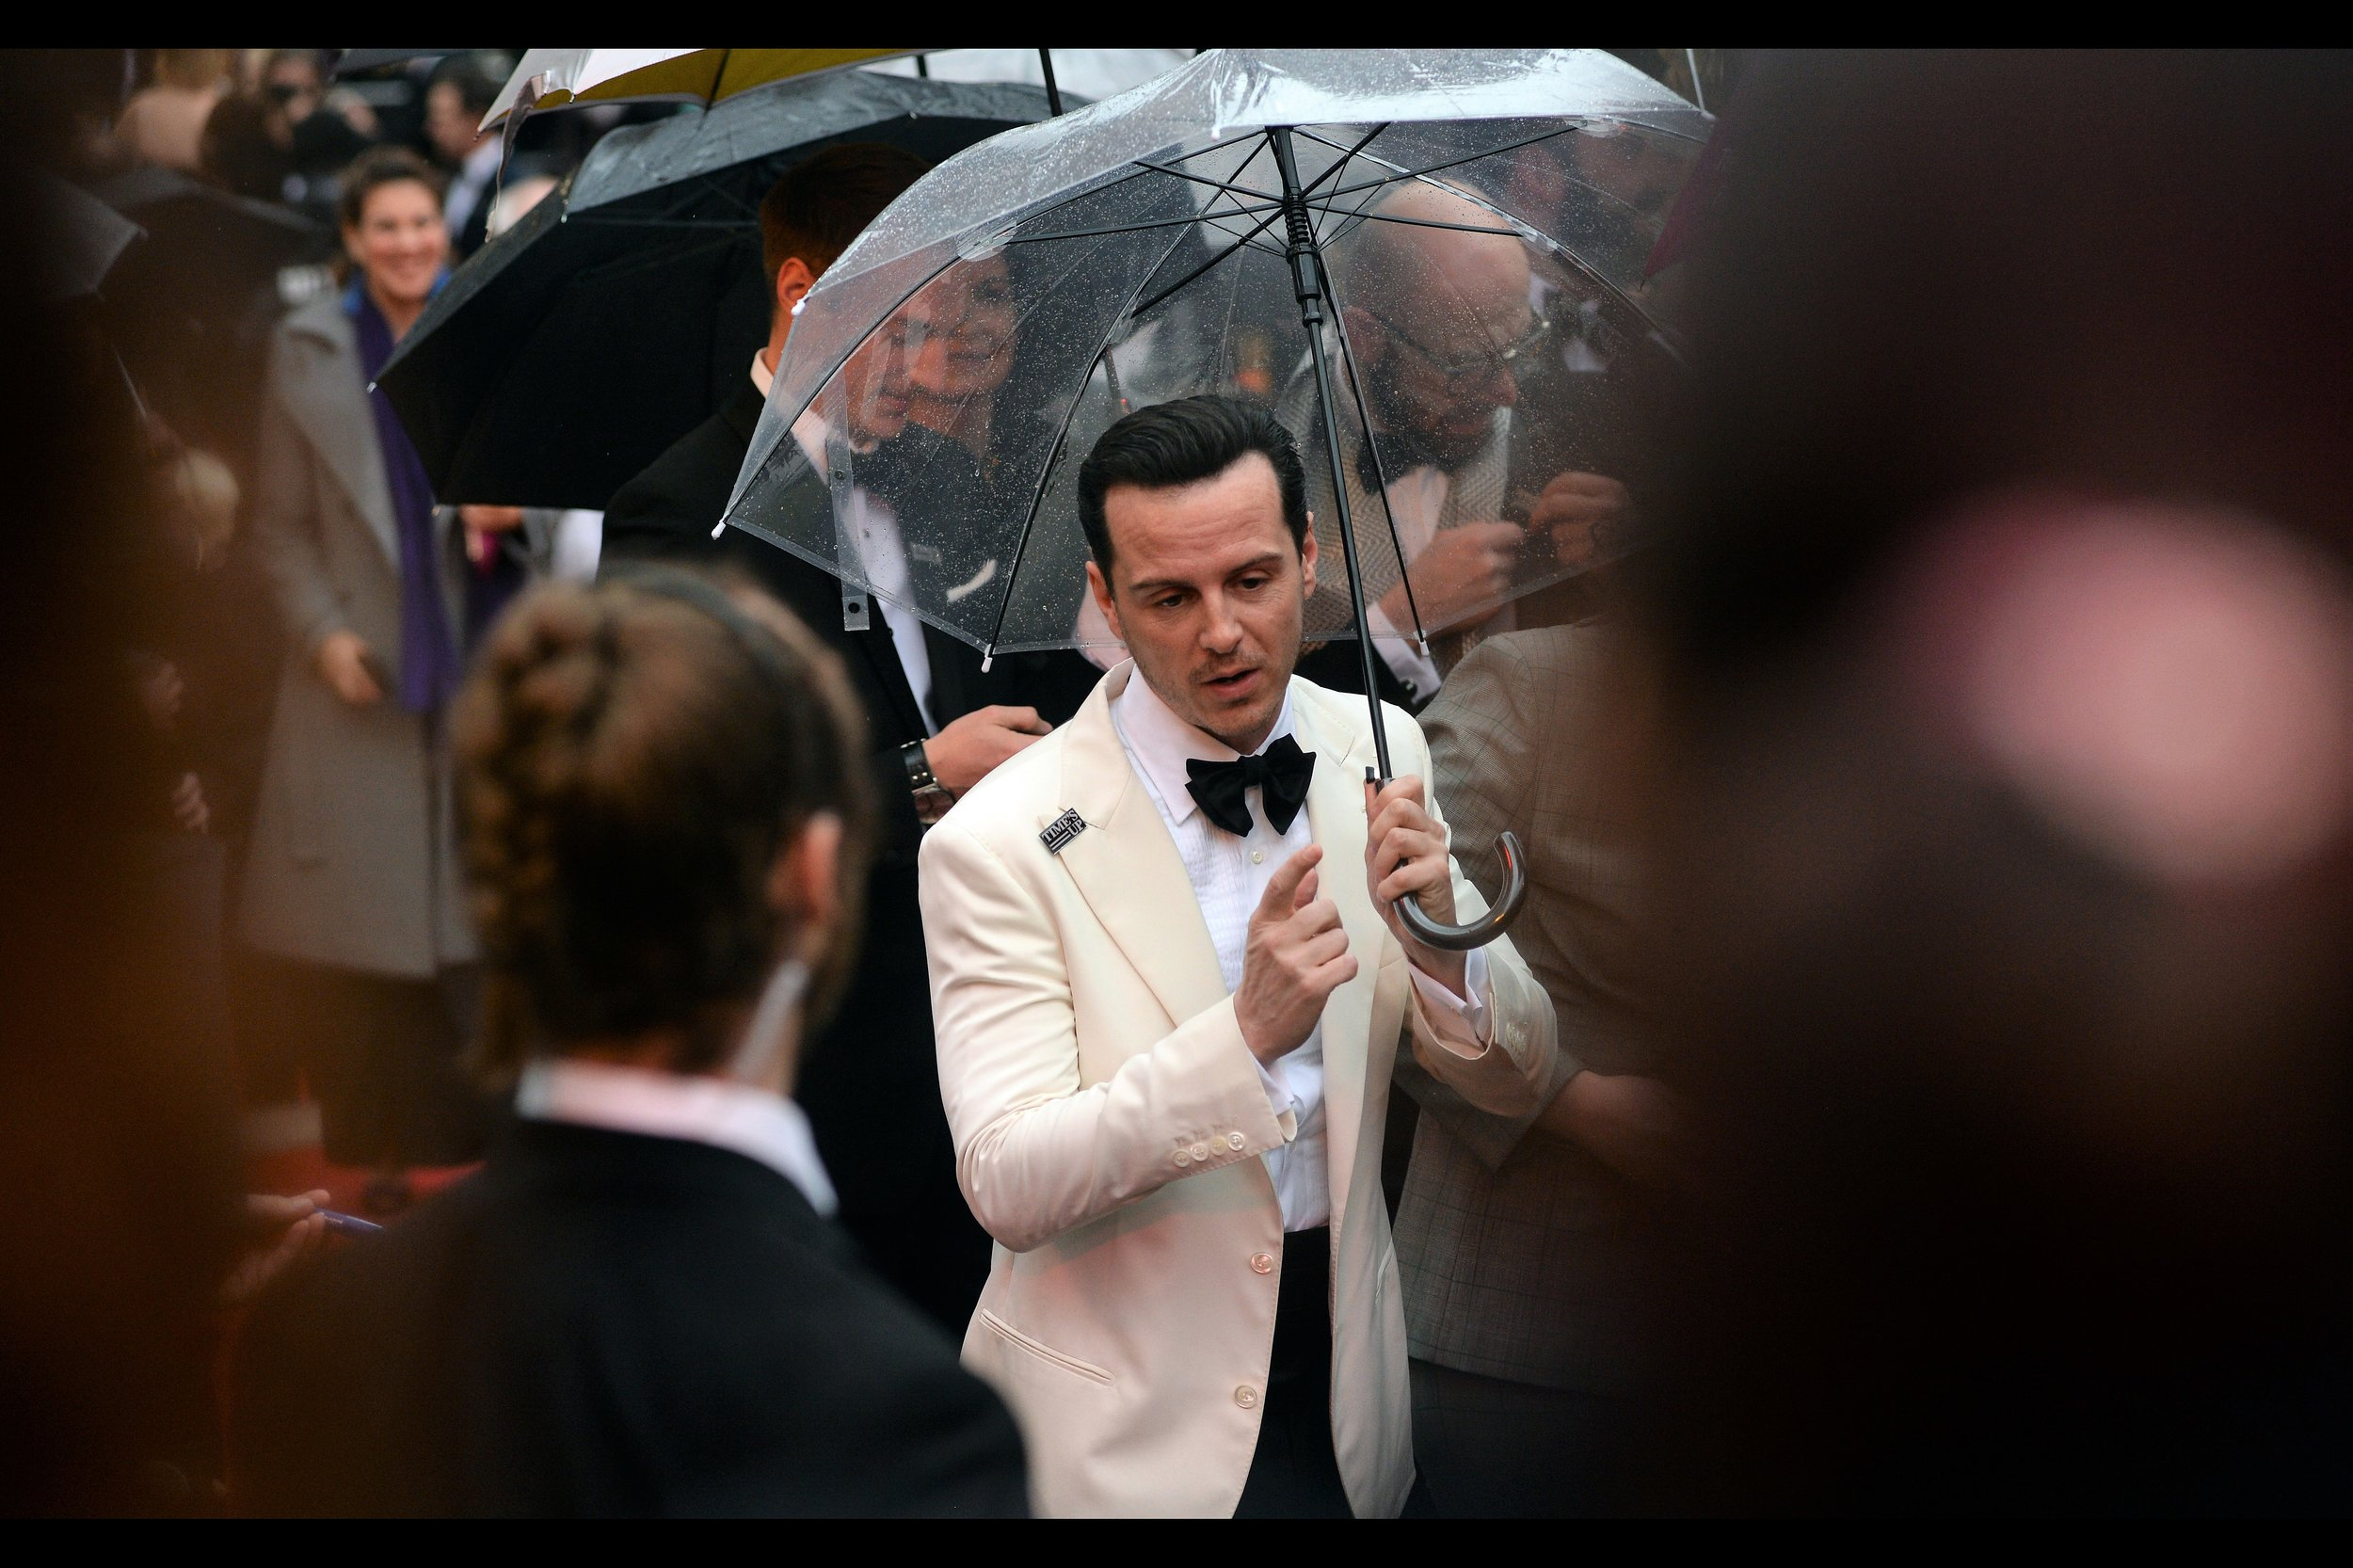 """""""Awww... come on, stop making me sign stuff from 'Sherlock' and stuff where I'm   'C' from Spectre  """"  - Andrew Scott is perhaps best known for both of those things, but on this night he was a nominee for best actor for """"Hamlet""""."""